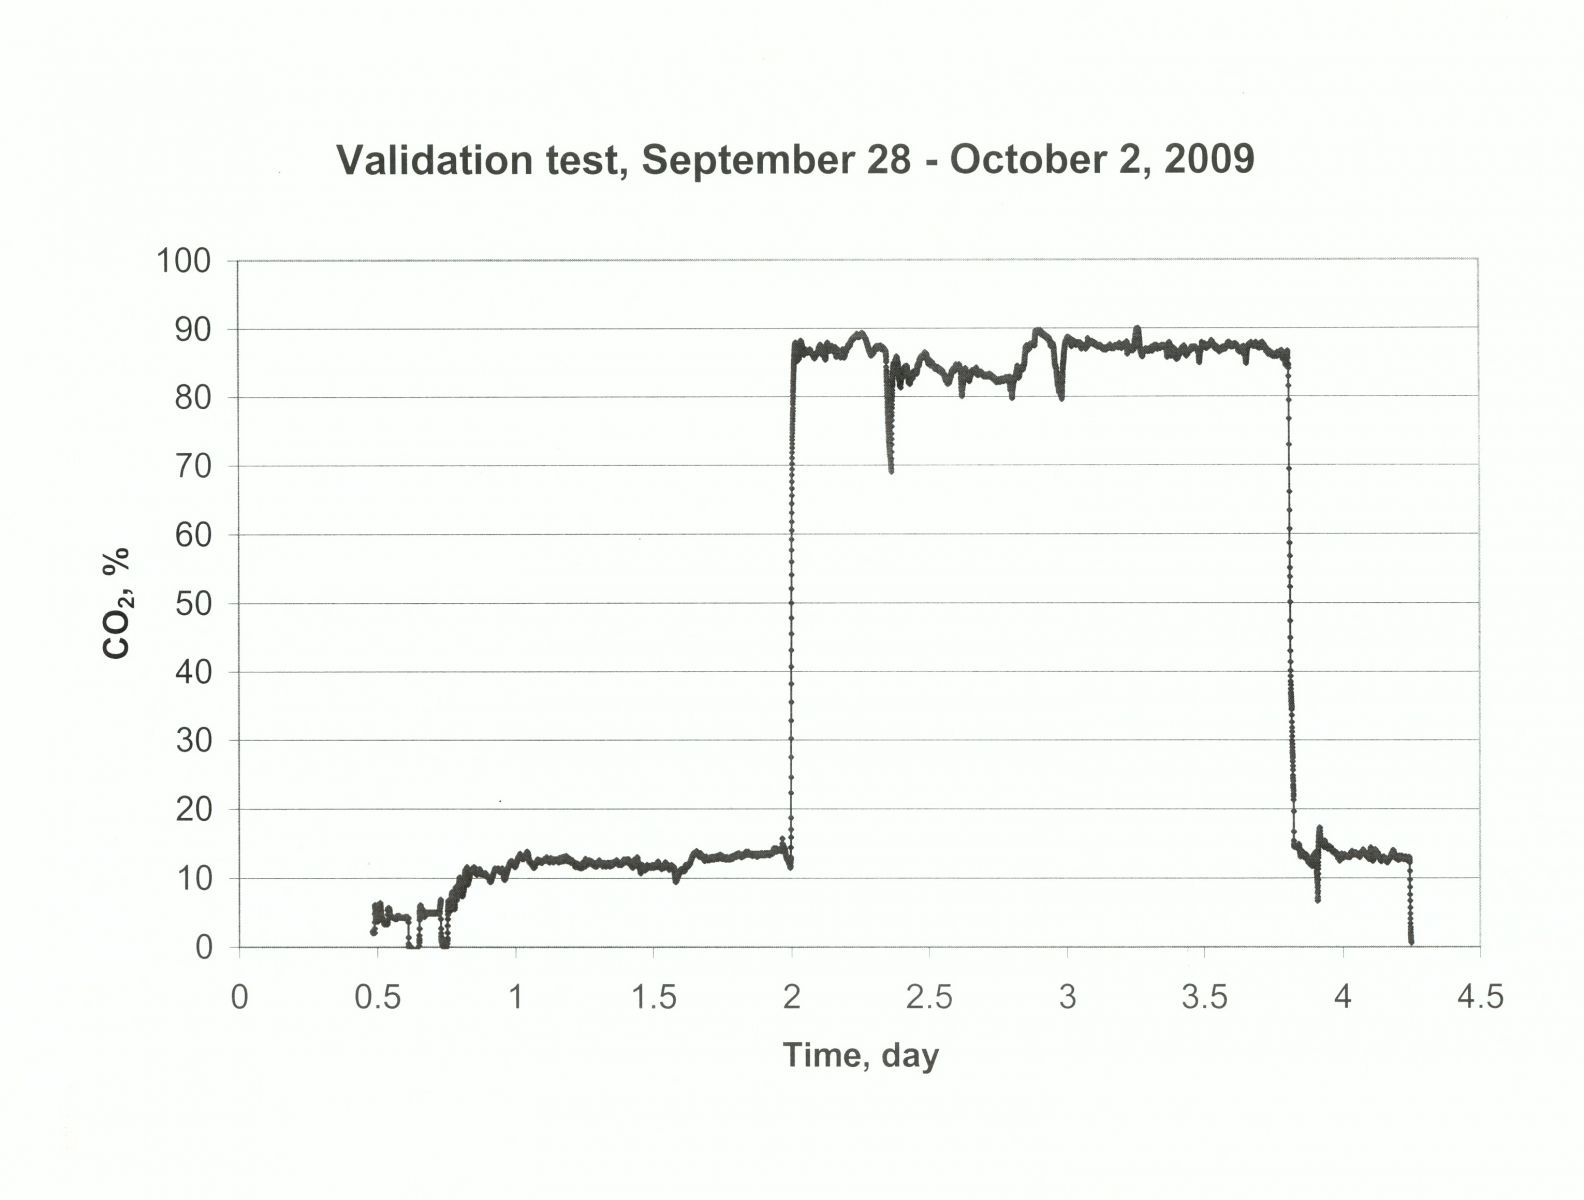 Validation Tests, September 28 - October 2, 2009